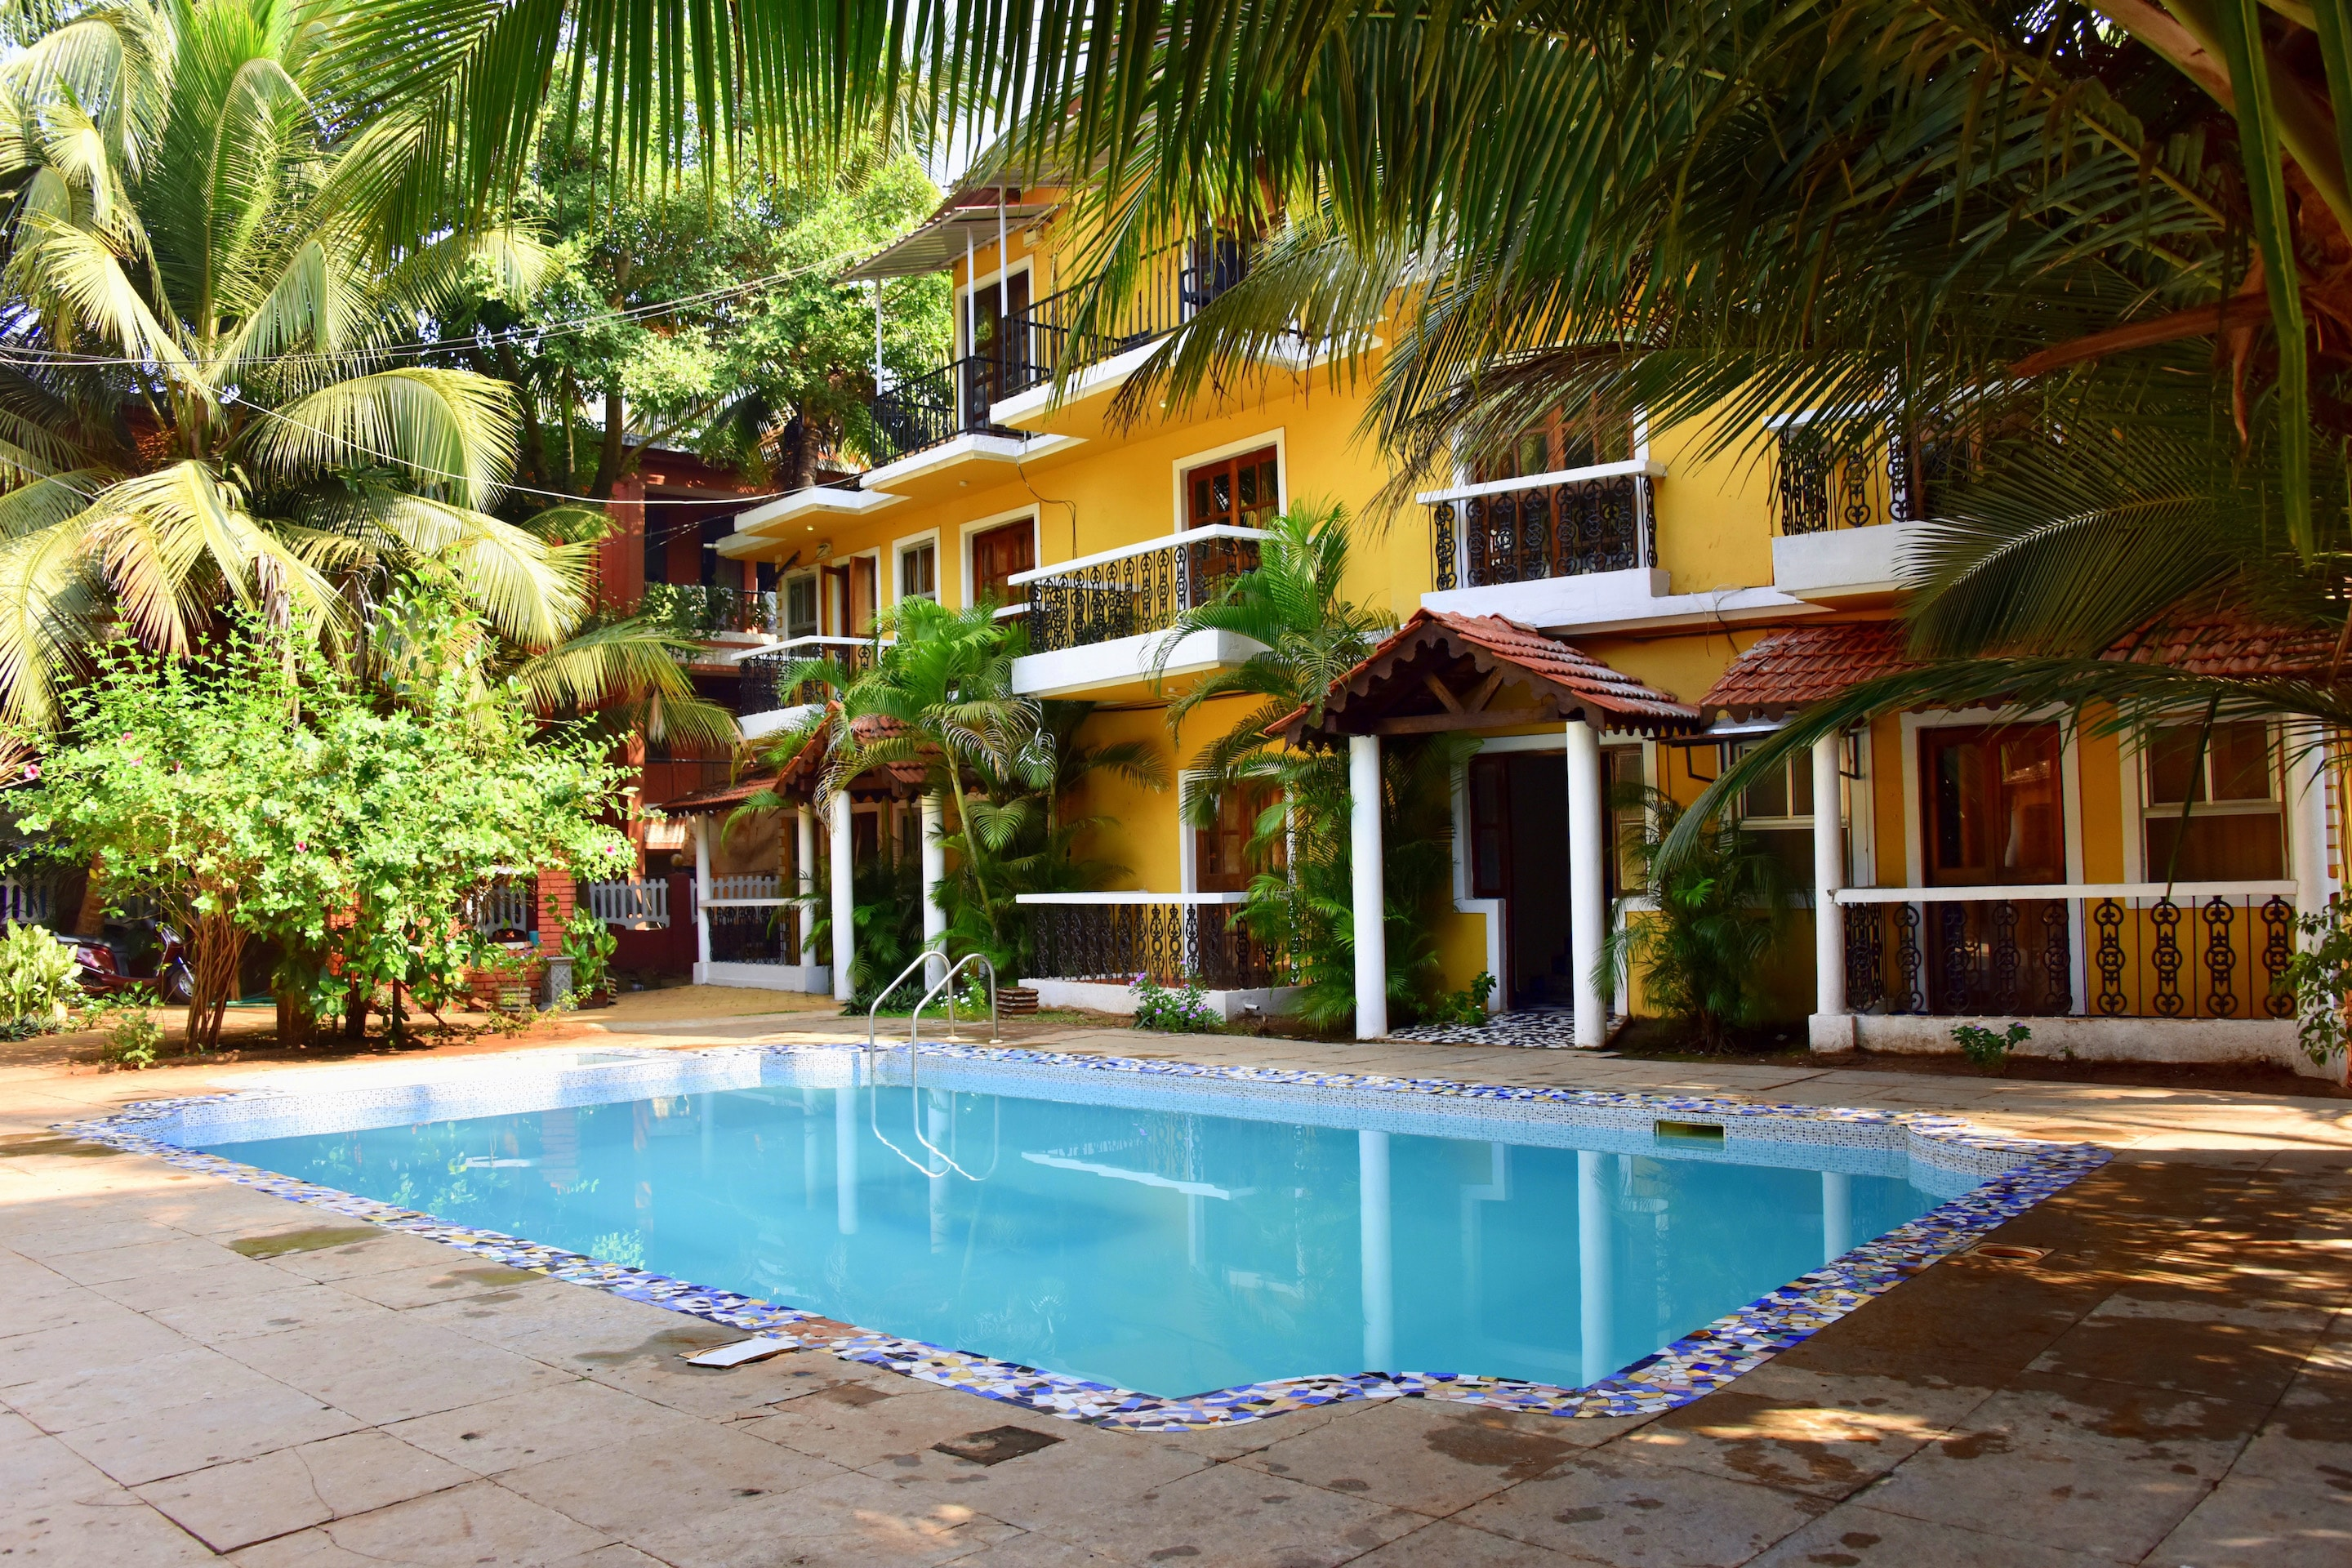 Hotels In Kabupaten Jepara For Beach Nearby Starting